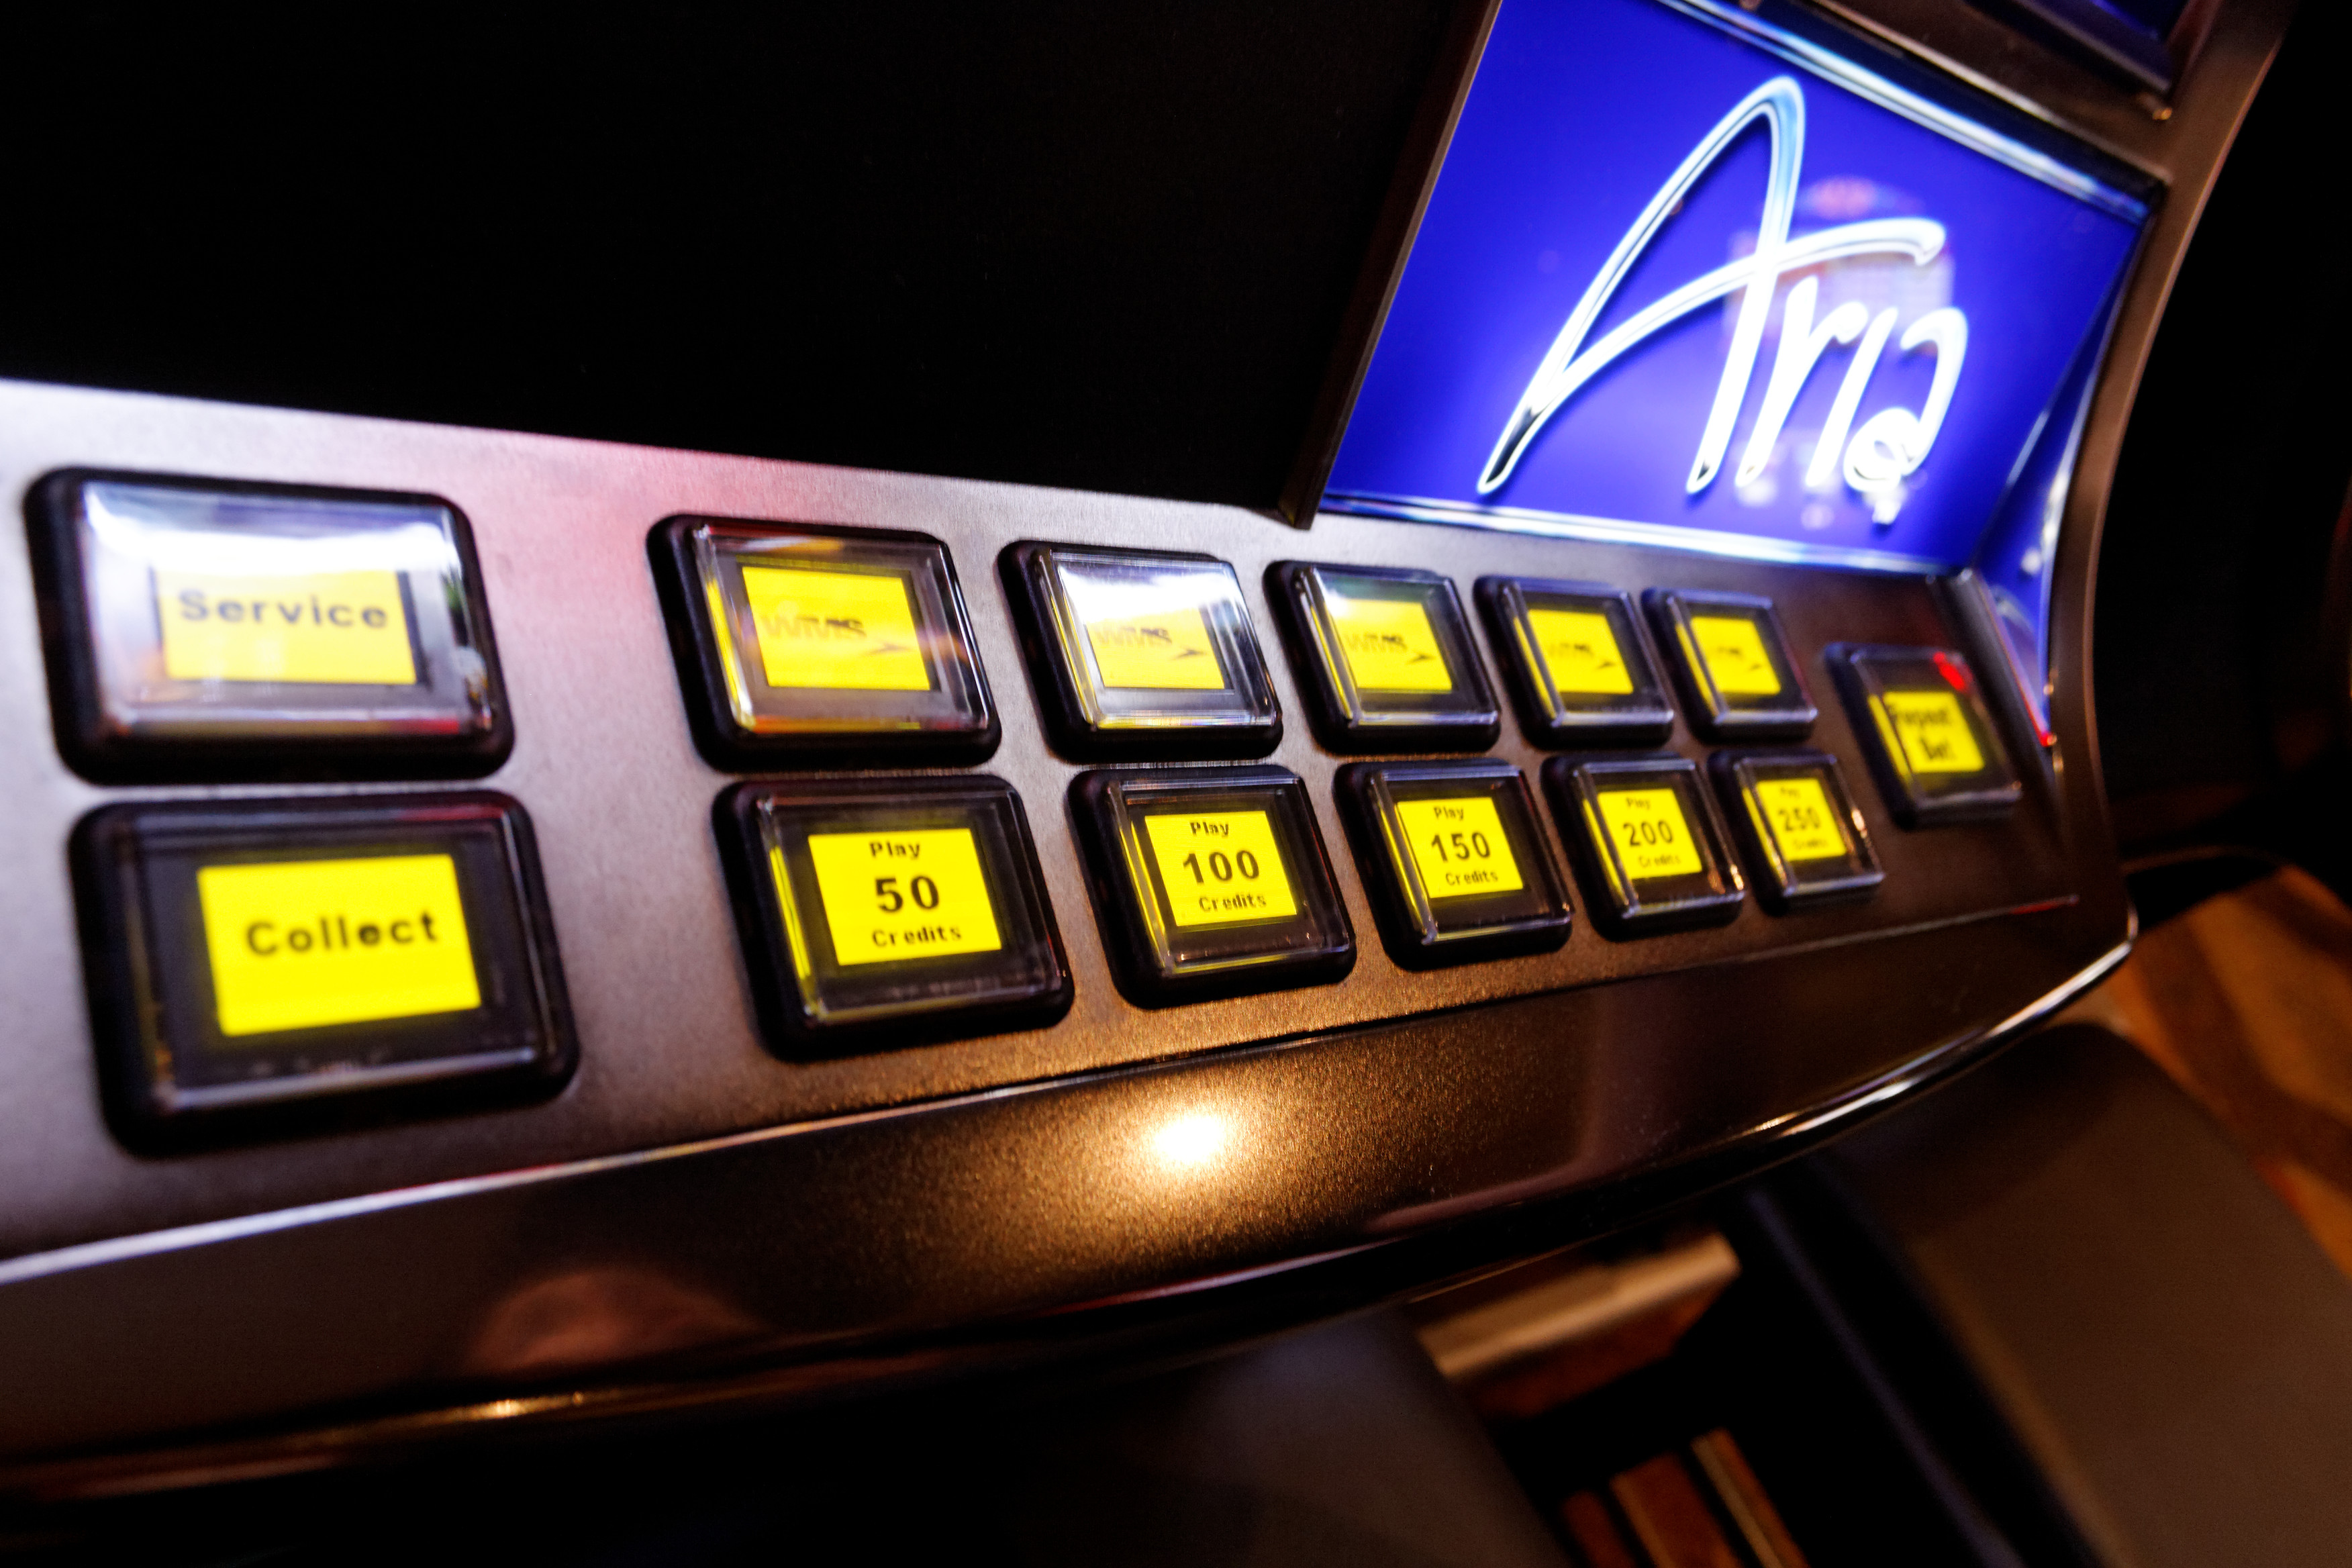 One CES story nobody's talking about: Slot machine display ...